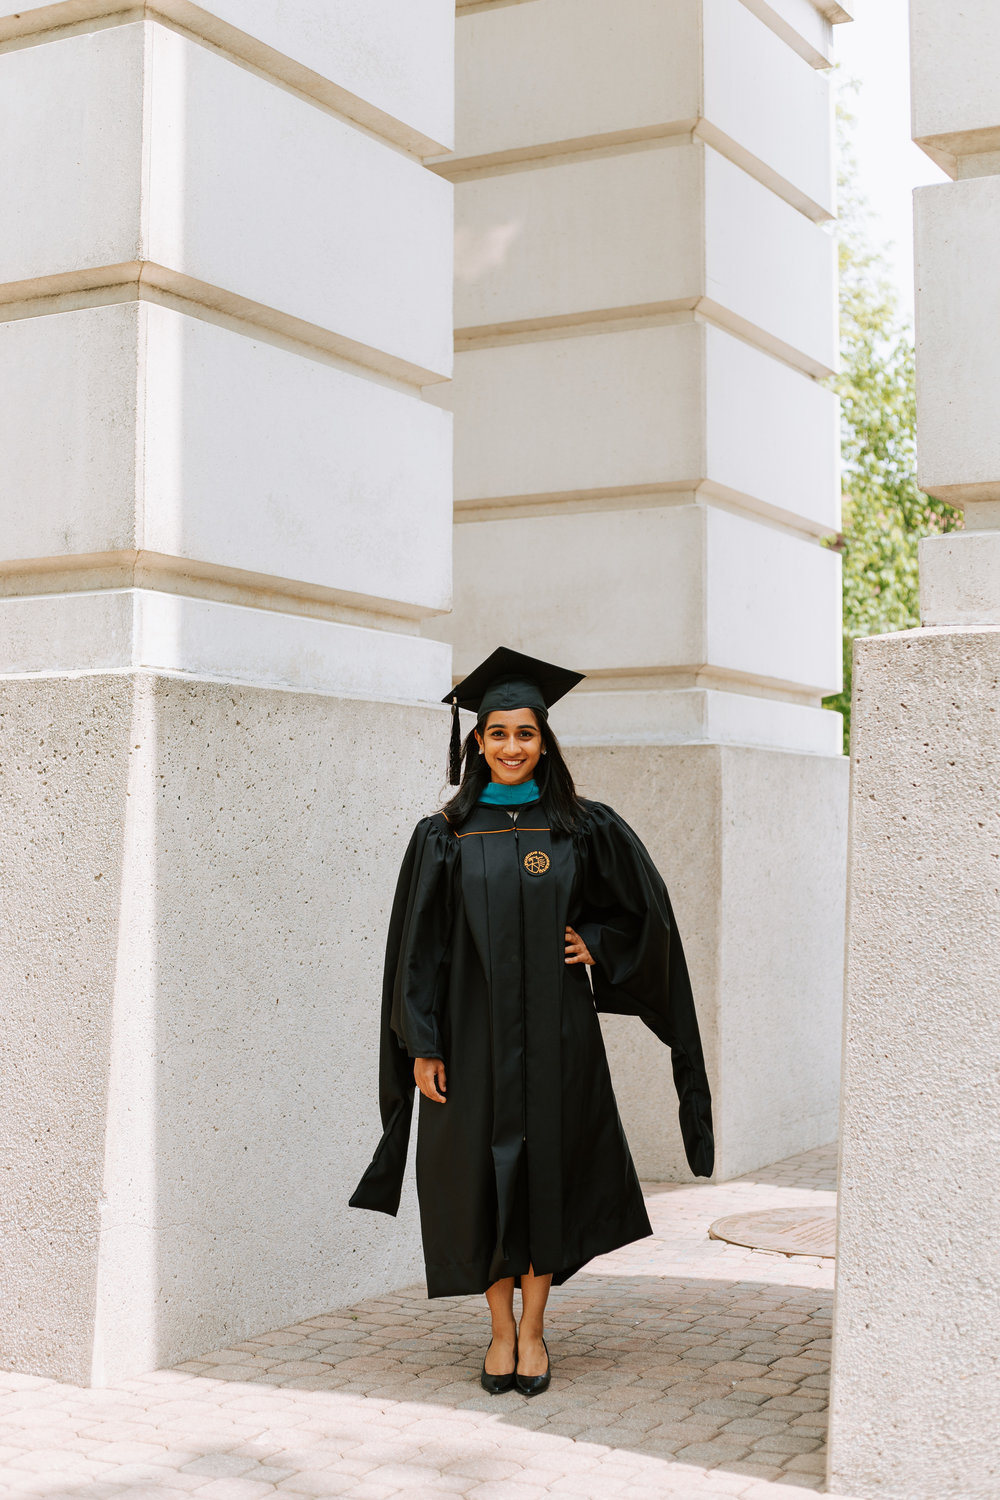 Shutter Up Studios | Senior photographer in West Lafayette, Indiana | Purdue graduation under bell tower